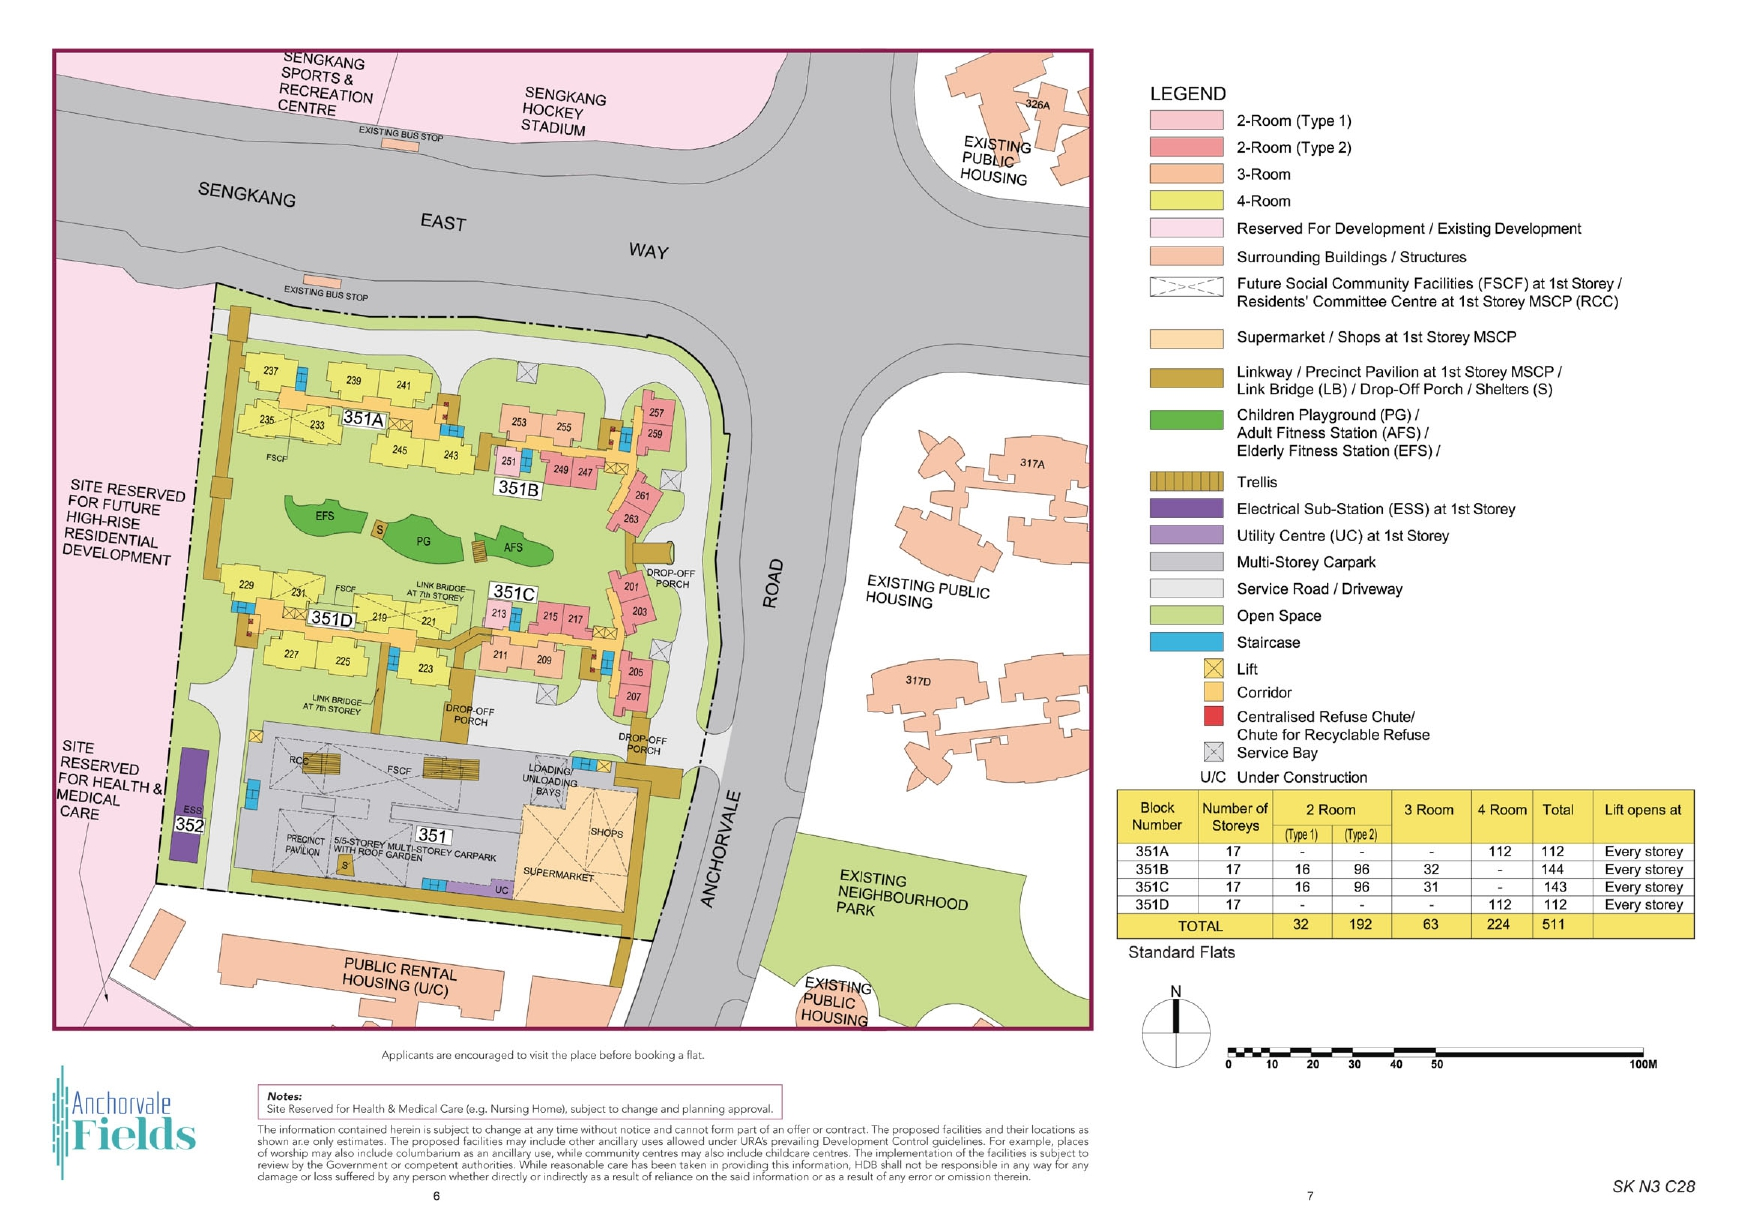 Anchorvale Fields Site Plan